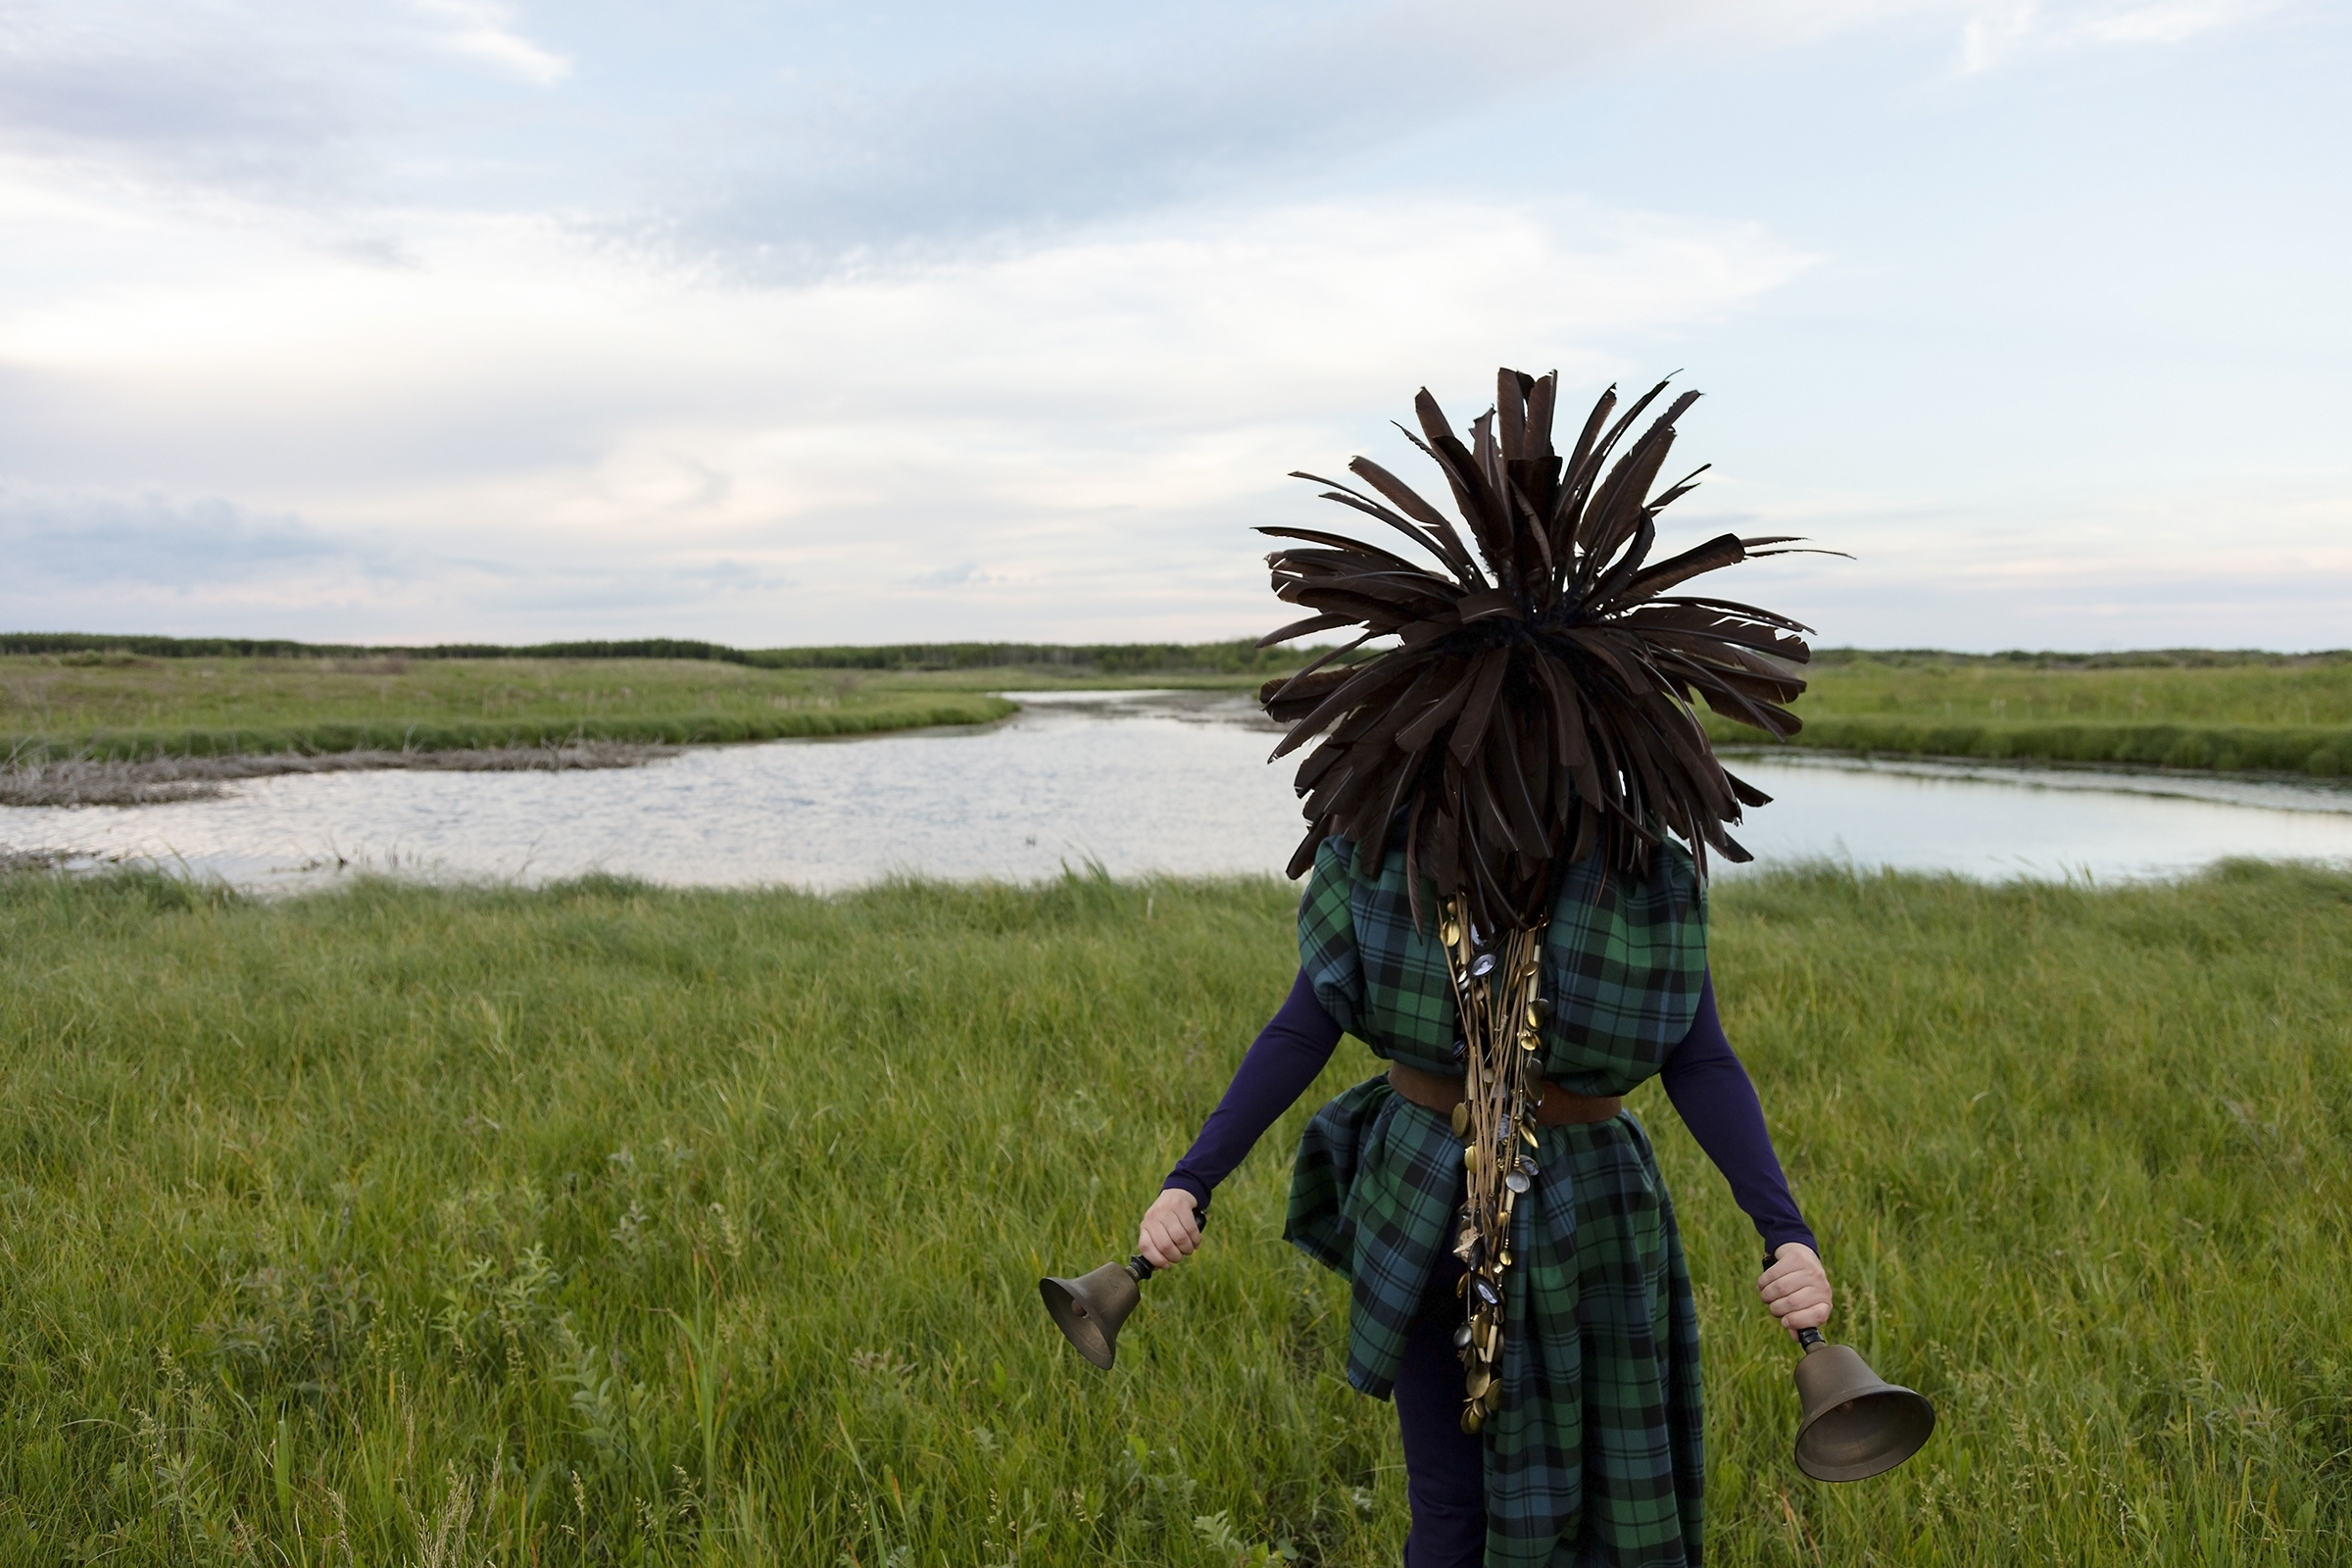 Meryl McMaster, From a Still Unquiet Place, 2019. From the series As Immense as the Sky. Courtesy of the artist, Stephen Bulger Gallery and Pierre-François Ouellette art contemporain.